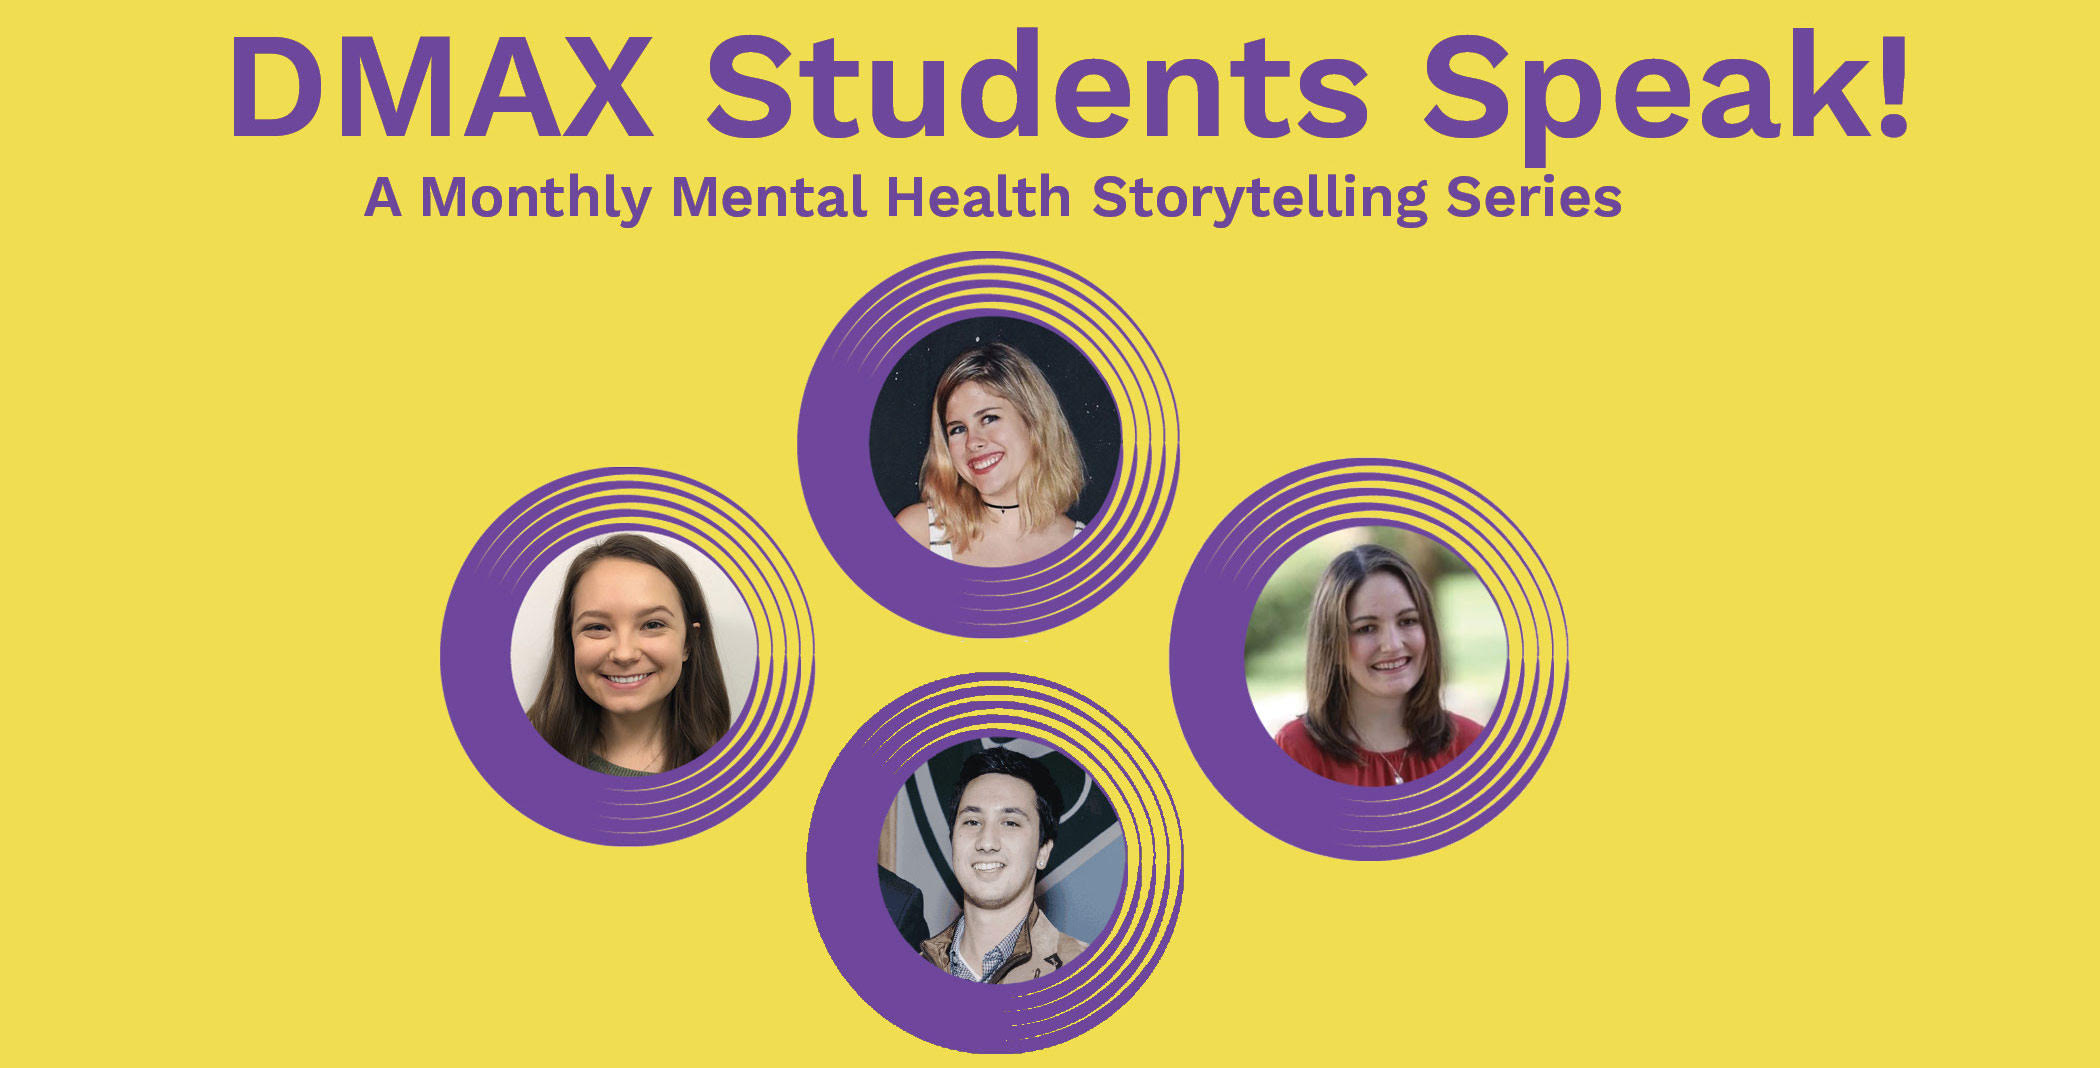 DMAX Students Speak! – A Monthly Mental Health Storytelling Series